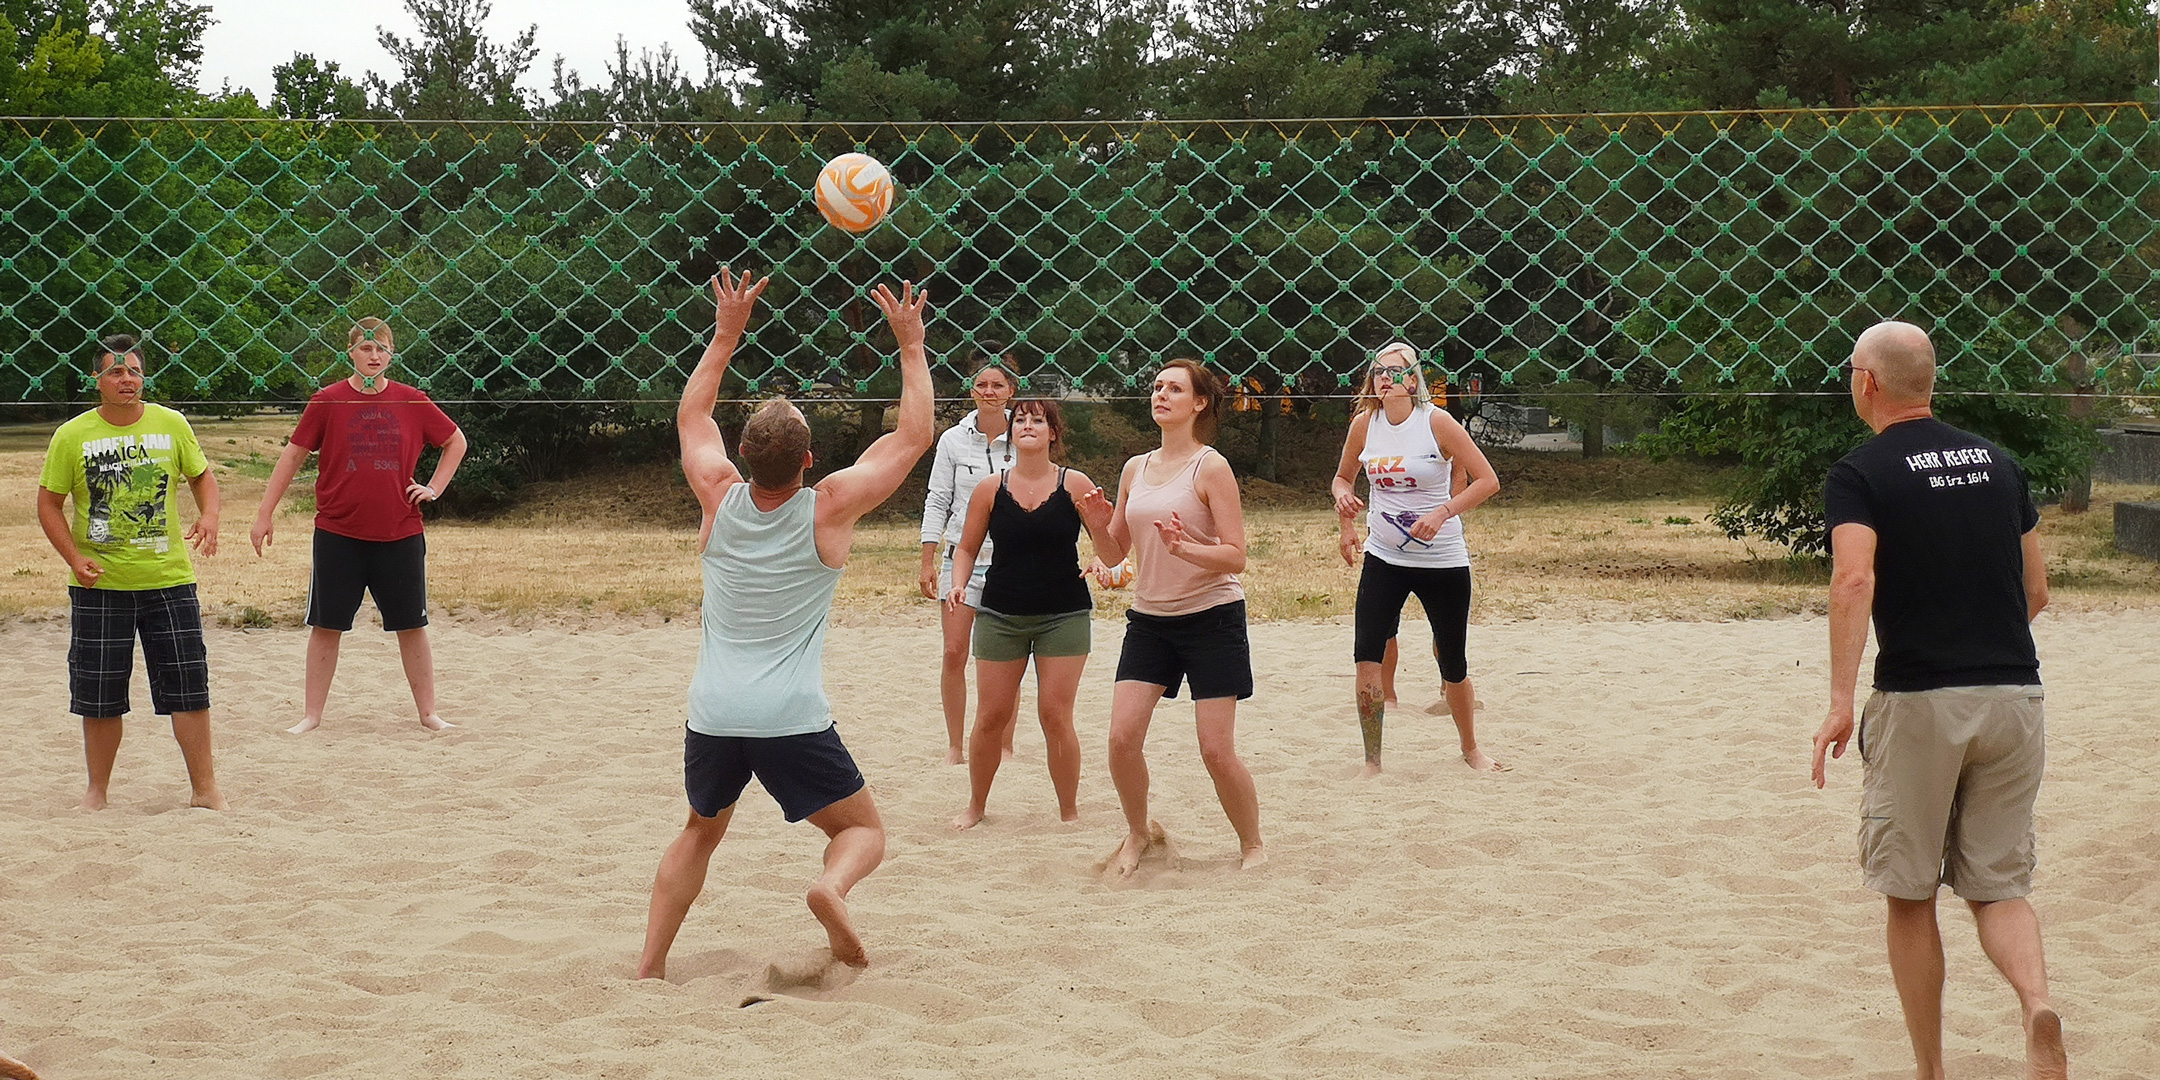 Traditionelles Volleyballturnier